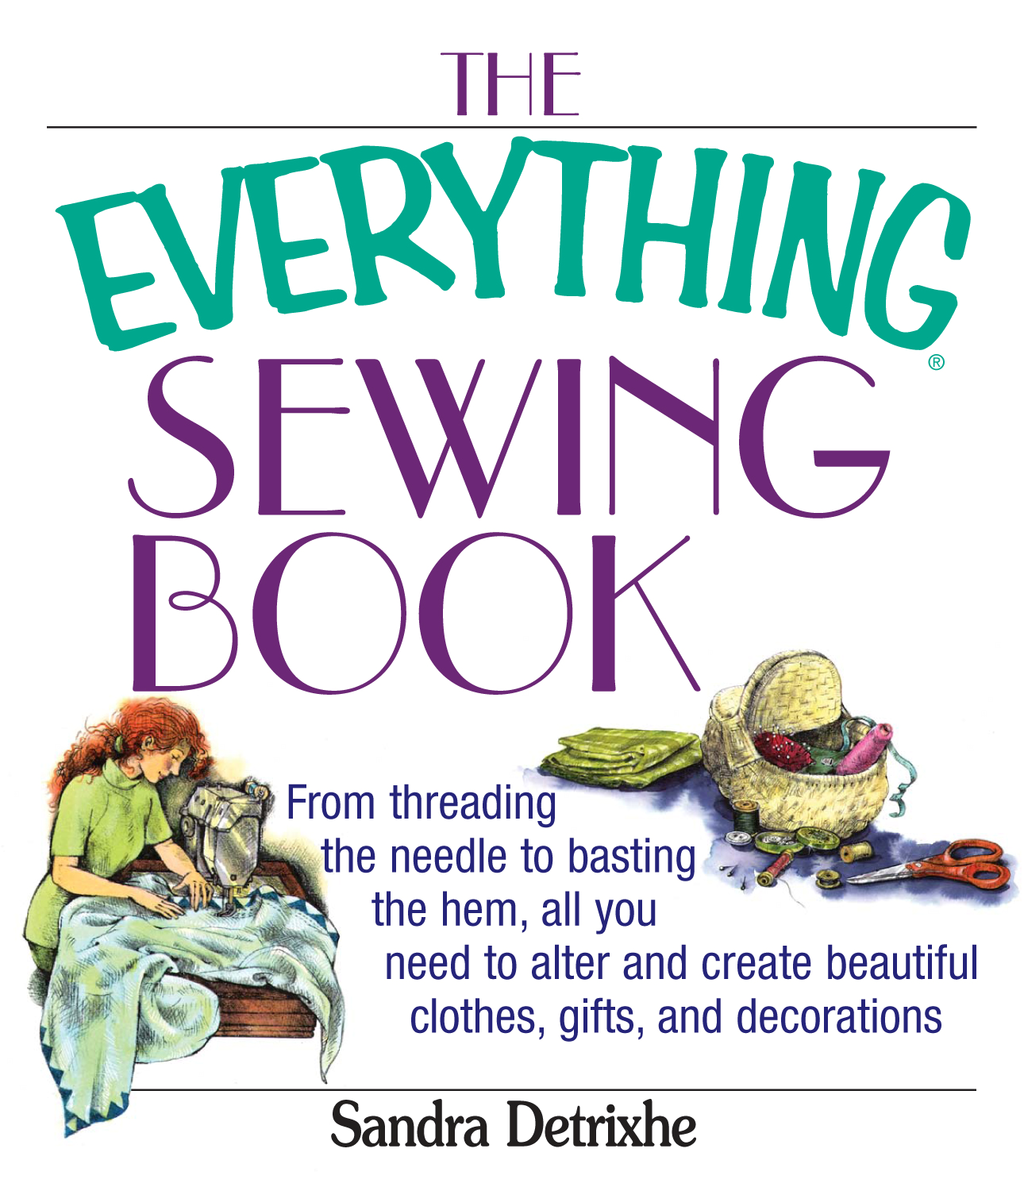 The Everything Sewing Book: From Threading the Needle to Basting the Hem, All You Need to Alter and Create Beautiful Clothes, Gifts, and Decorations